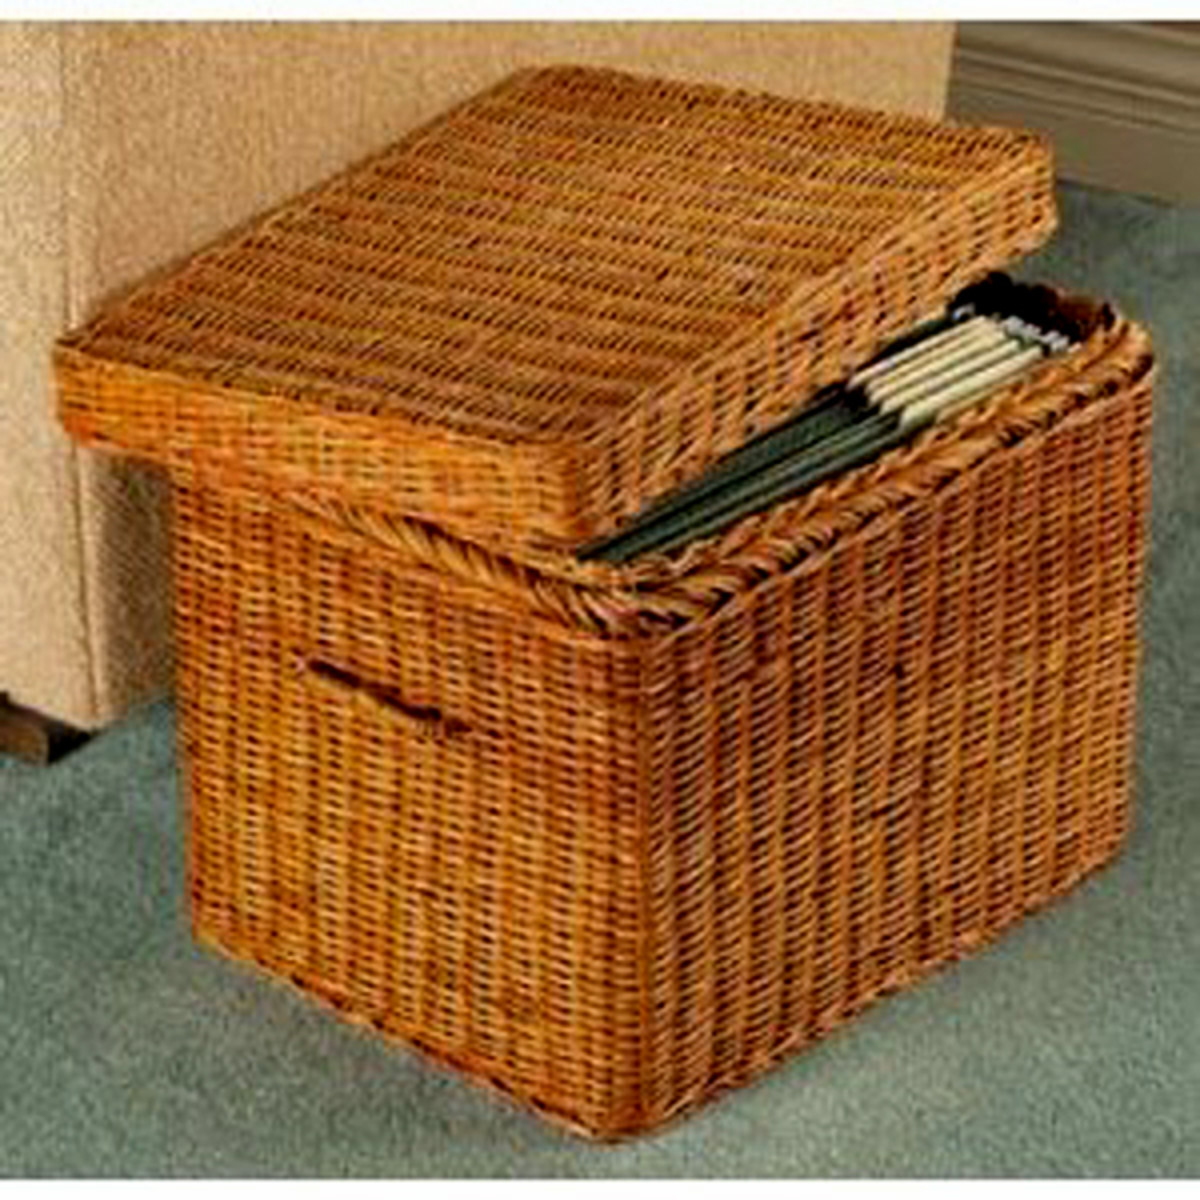 Wicker baskets are an alternative for filing important documents.